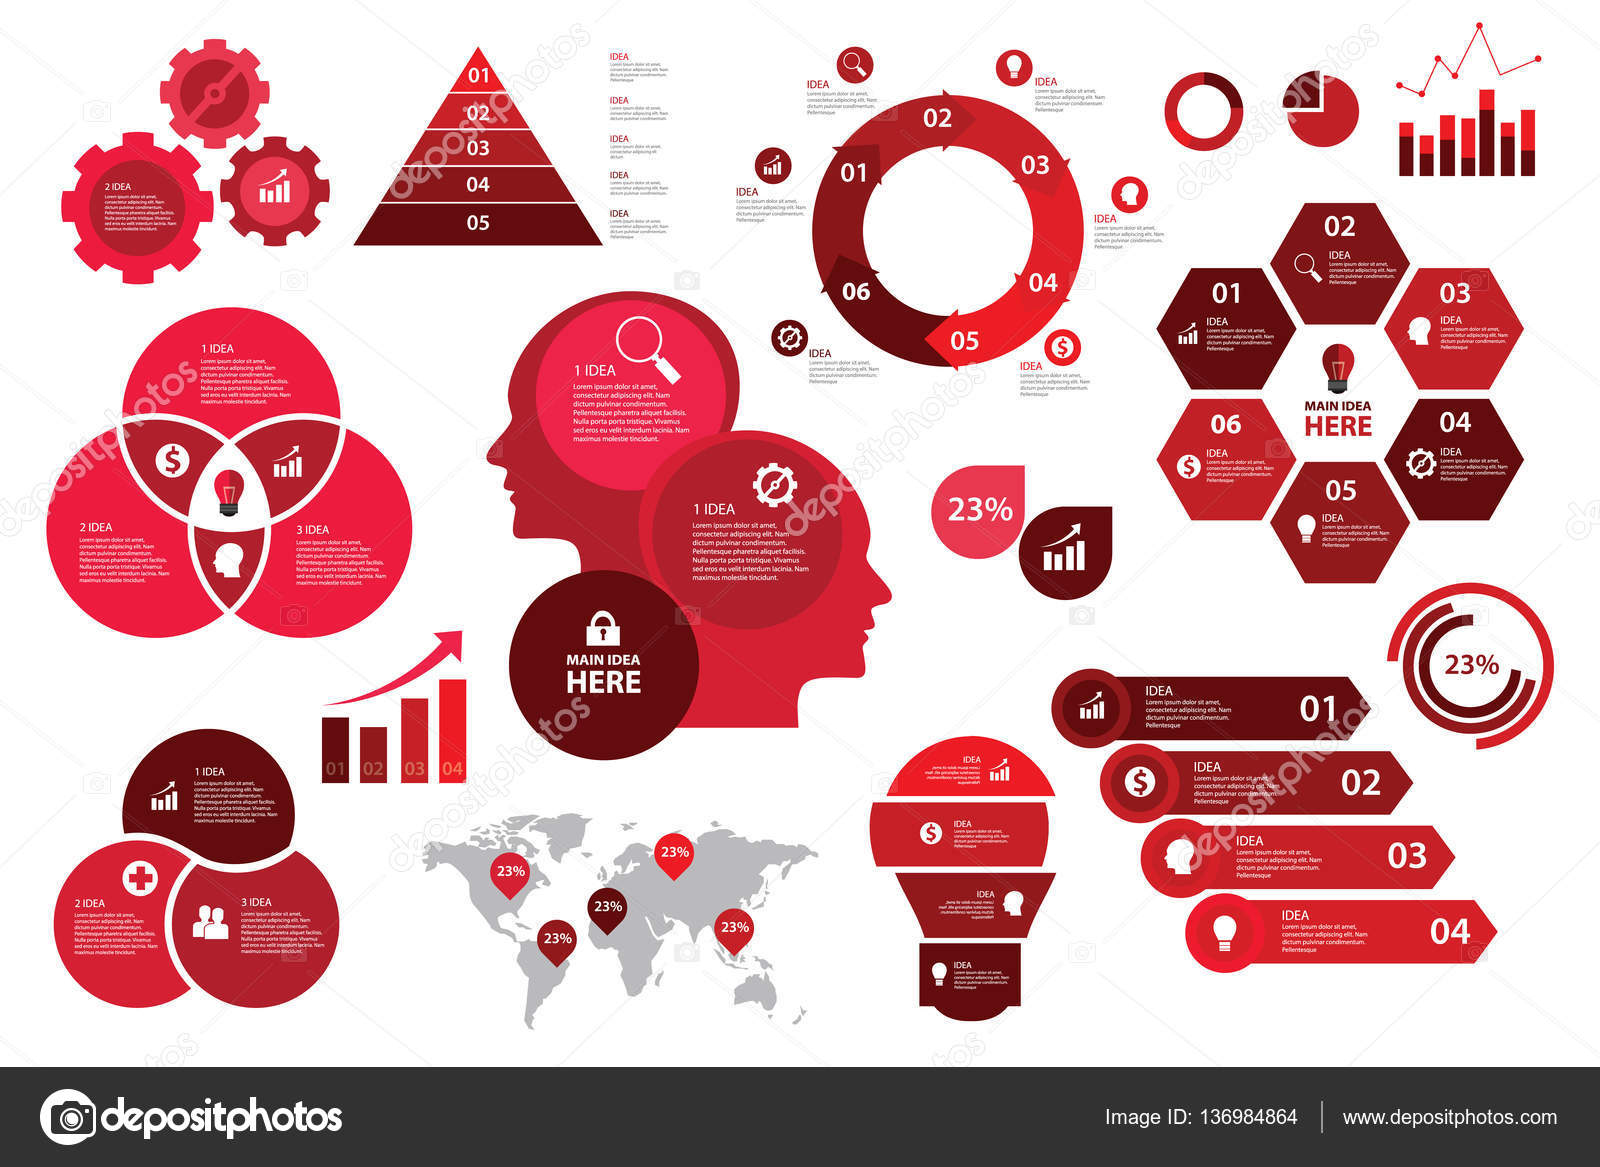 Infographic set red color scheme business graph arrow elements infographic set red color scheme business graph arrow elements chart visualization stock vector nvjuhfo Image collections